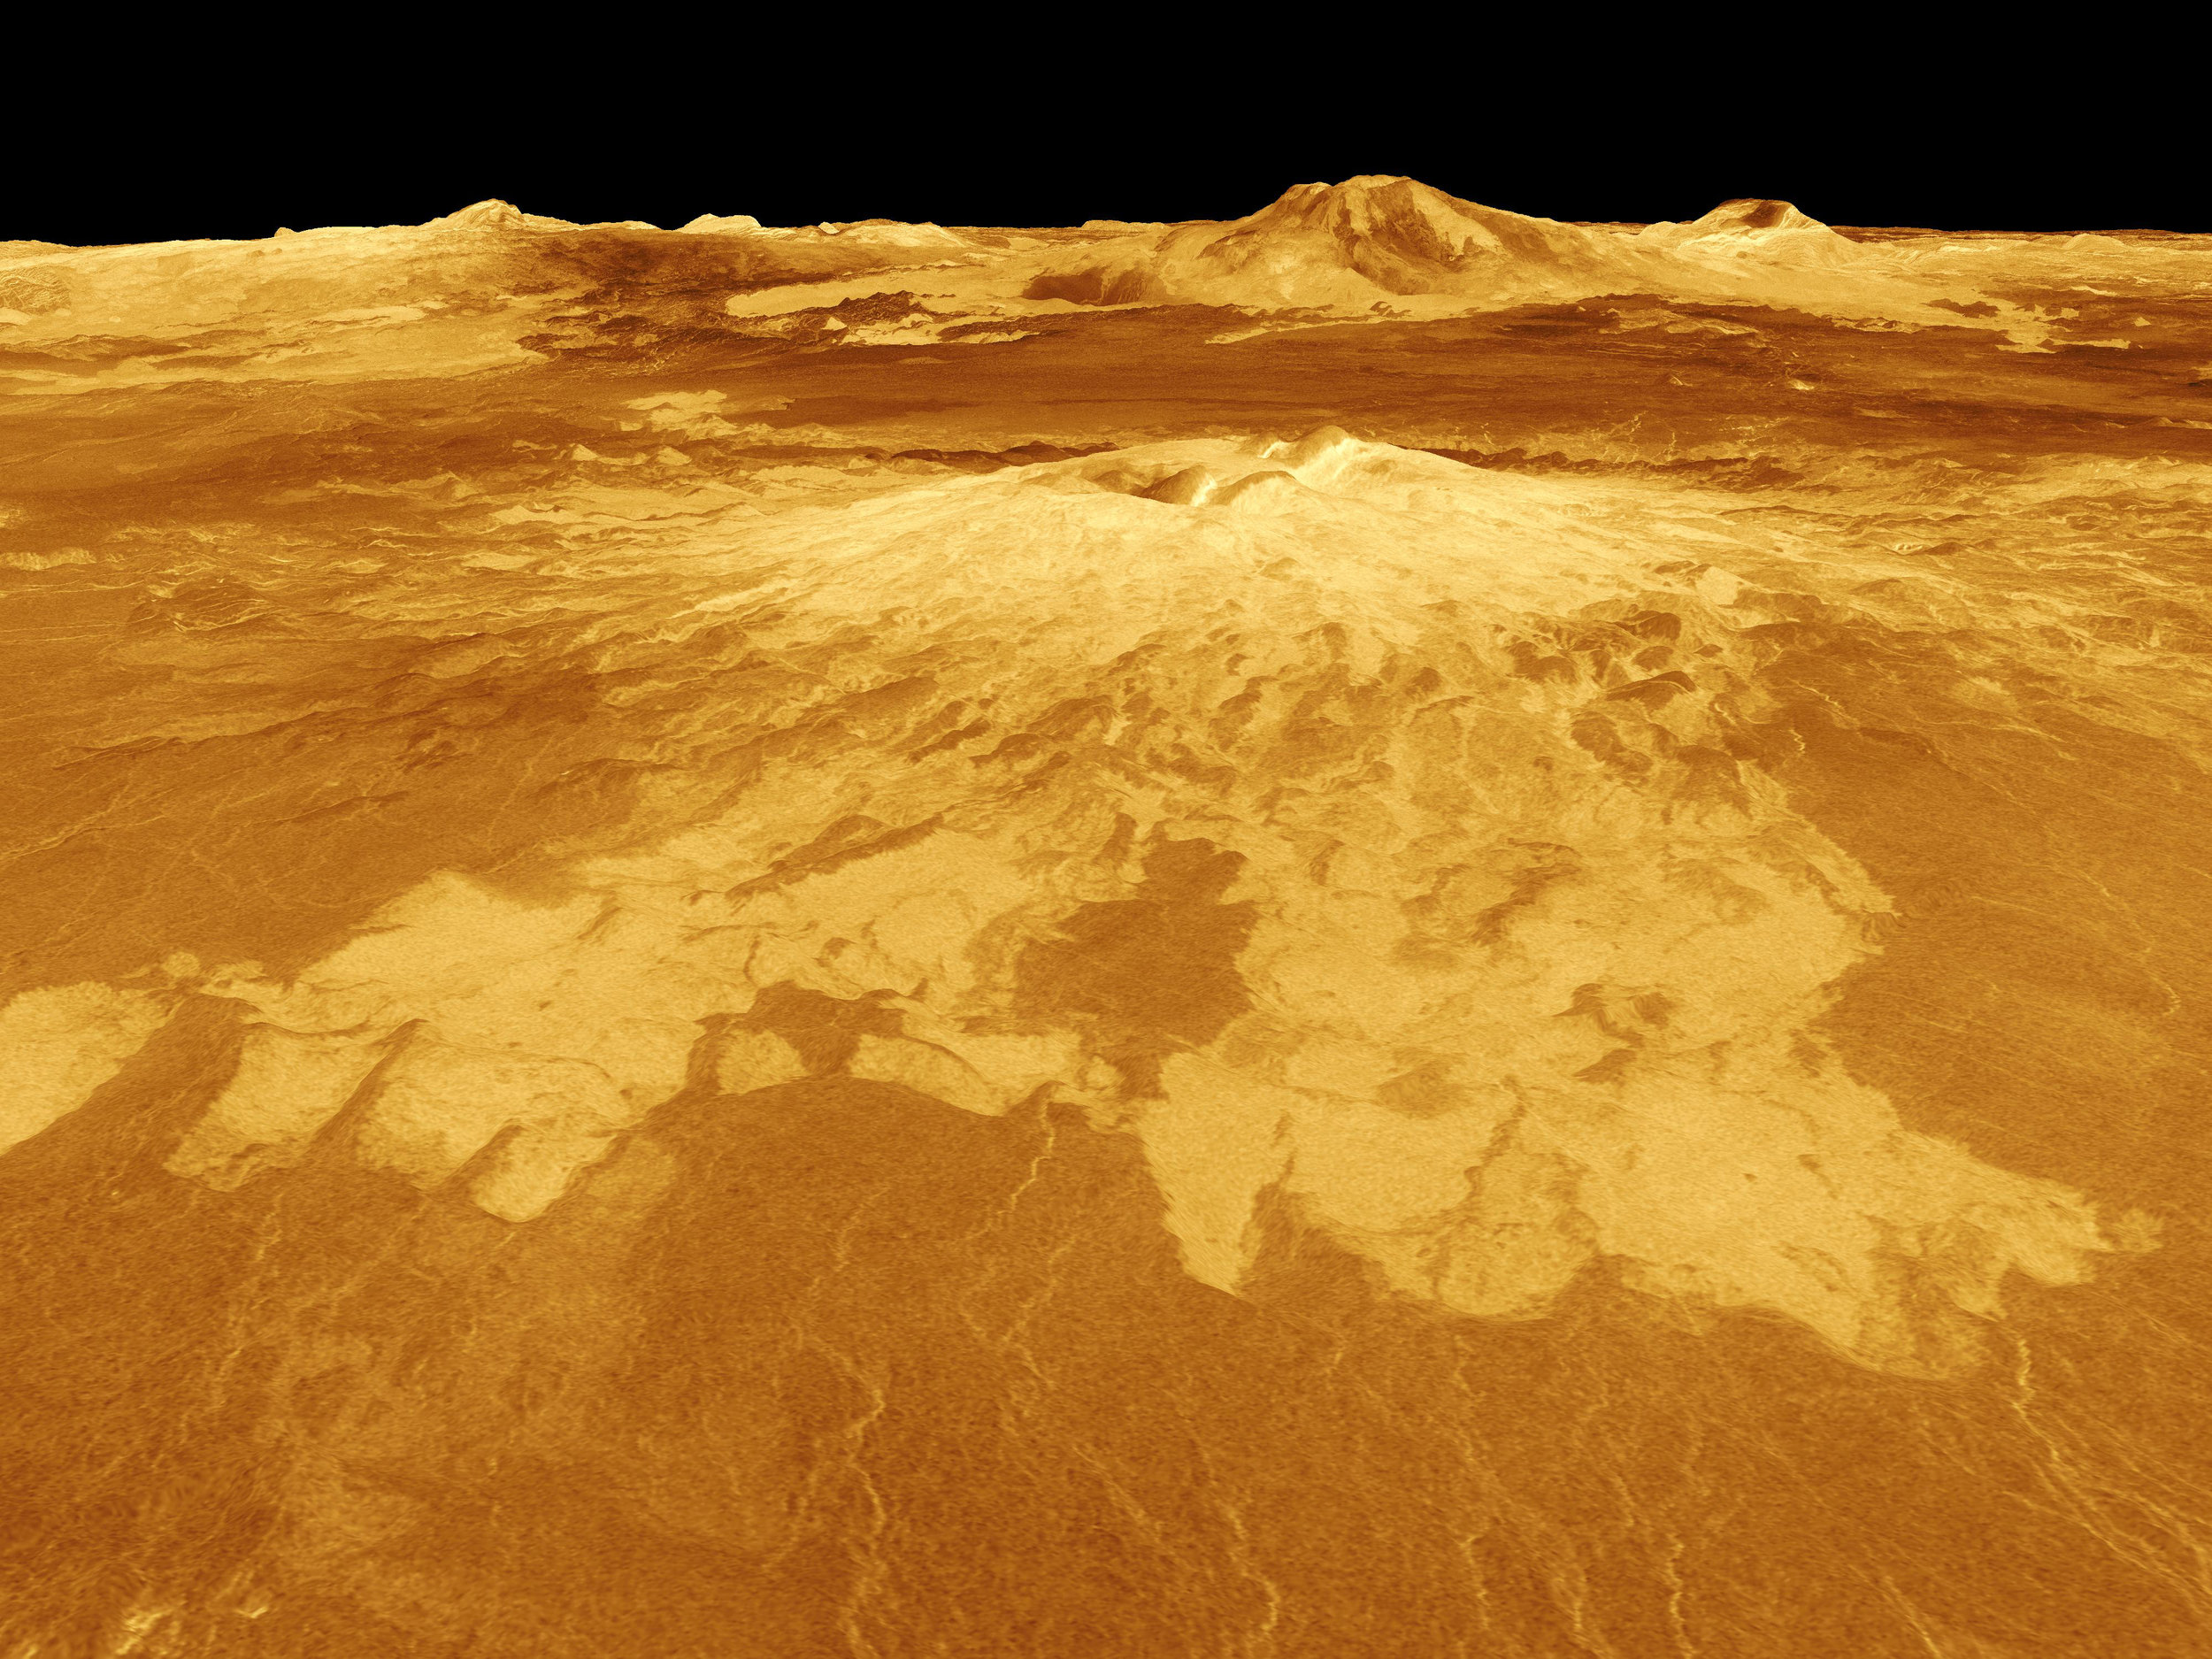 A volcano named Sapas Mons dominates this computer-generated view of the surface of Venus. Lava flows extend for hundreds of kilometers across the fractured plains shown in the foreground to the base of the mountain, which measures 248 miles across by 0.9 miles high. The image was produced by the Solar System Visualization project and the Magellan Science team at the JPL Multimission Image Processing Laboratory. Image credit: NASA/JPL